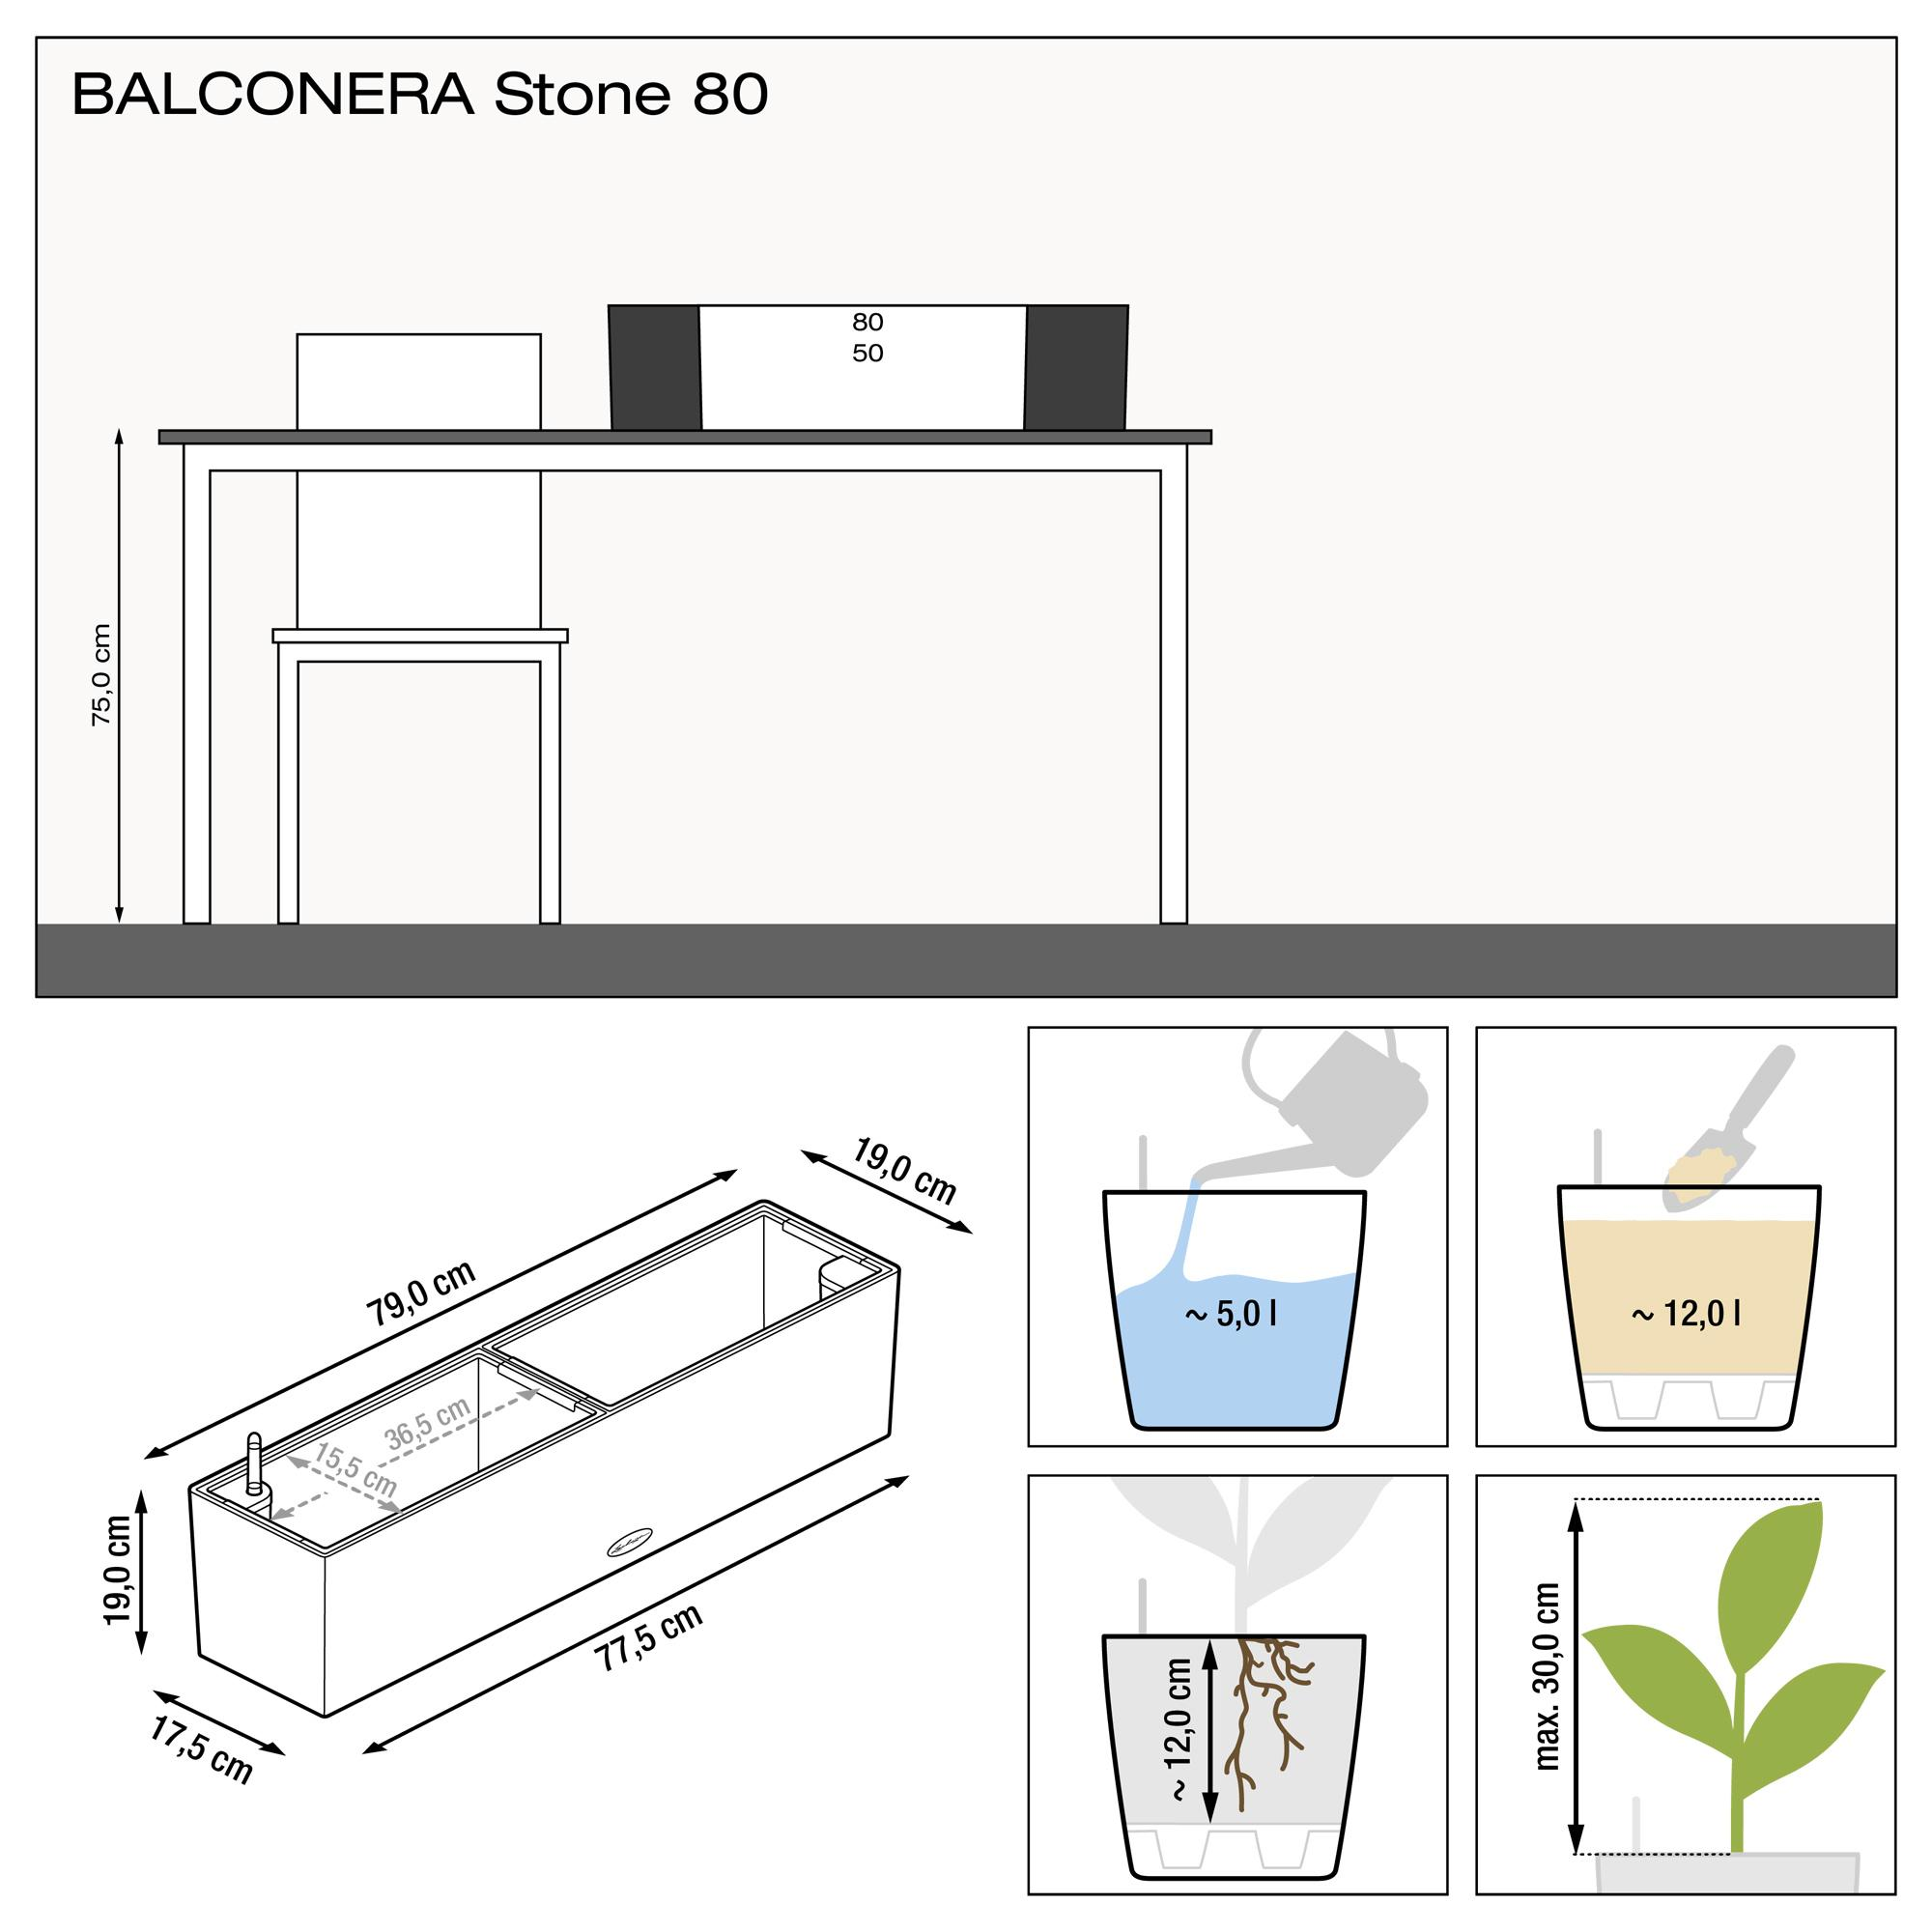 le_balconera-stone80_product_addi_nz